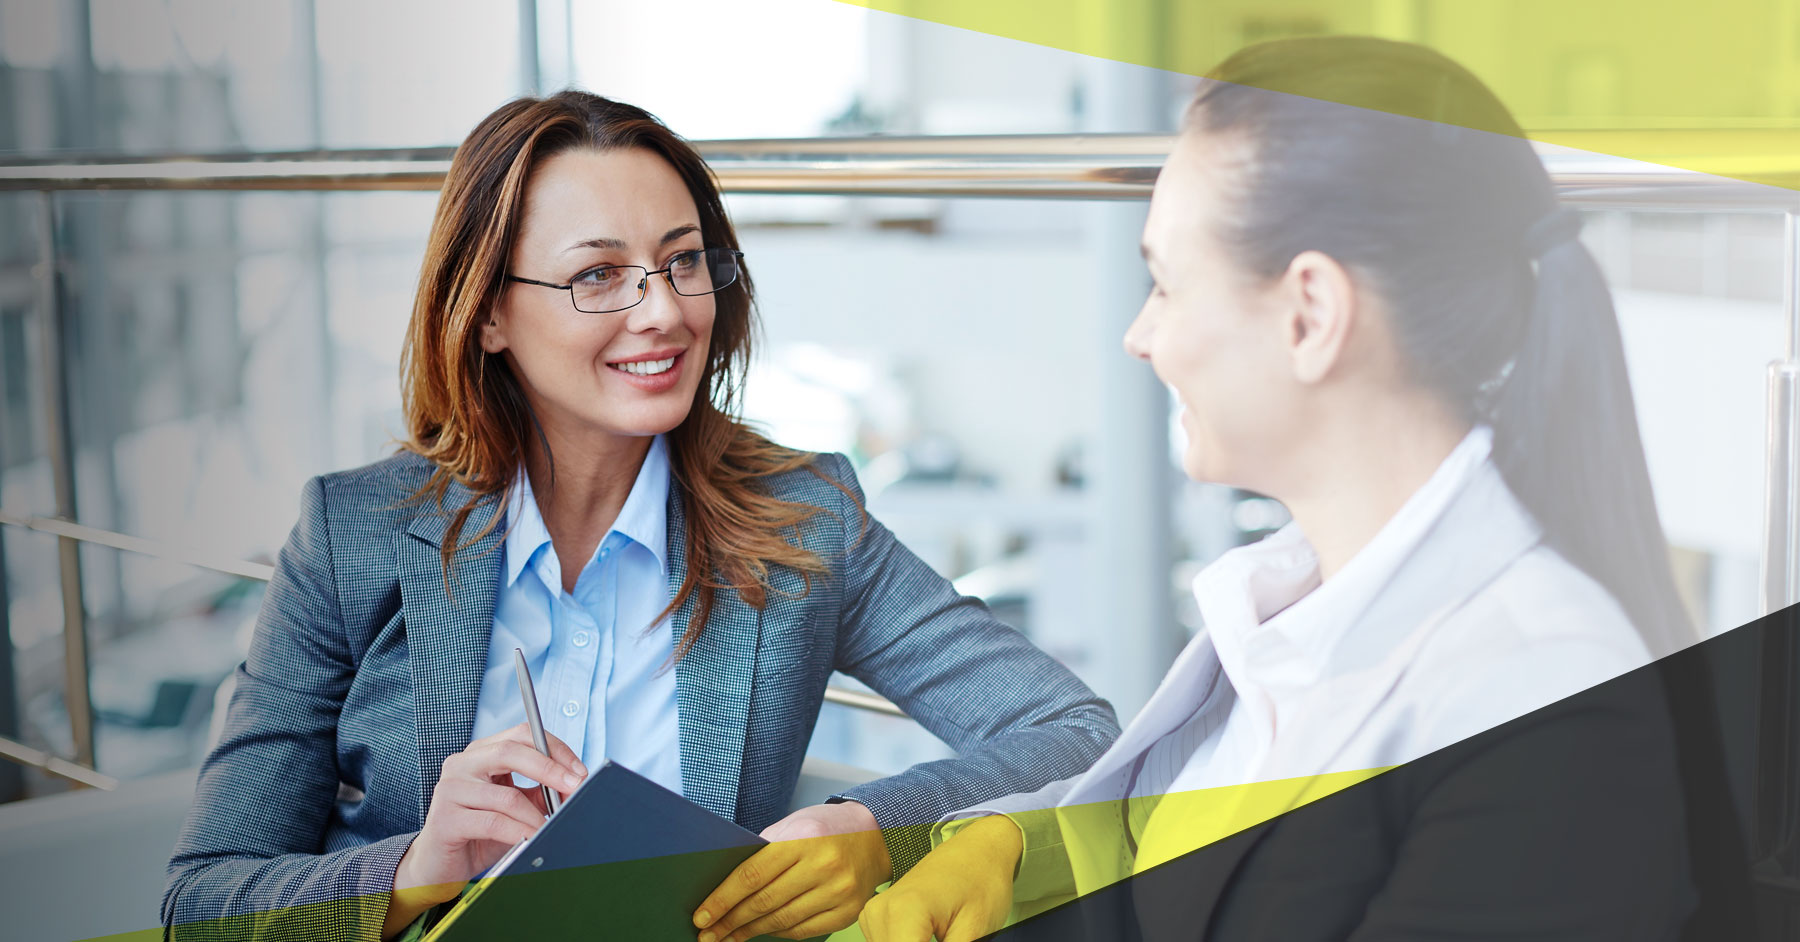 HR Manager featured image